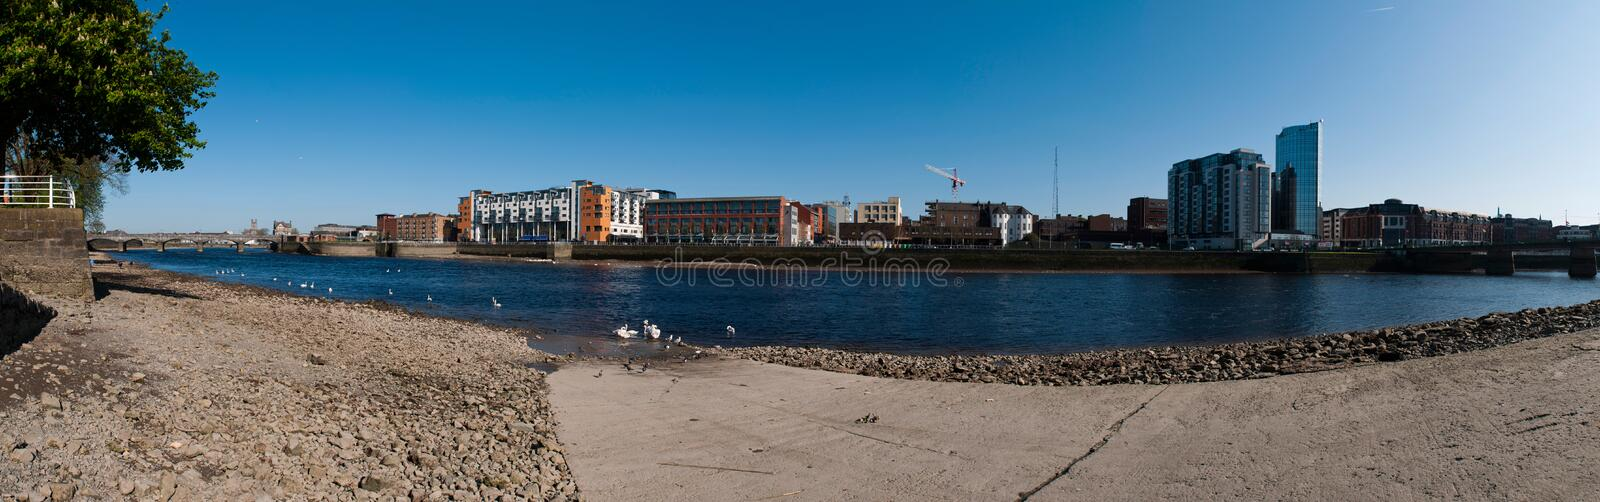 Limerick panorama. Stunning Limerick cityscape panorama from Shannon bridge to Sarsfield Bridge, featuring Riverpoint buildings and river Shannon with swans ( royalty free stock photos